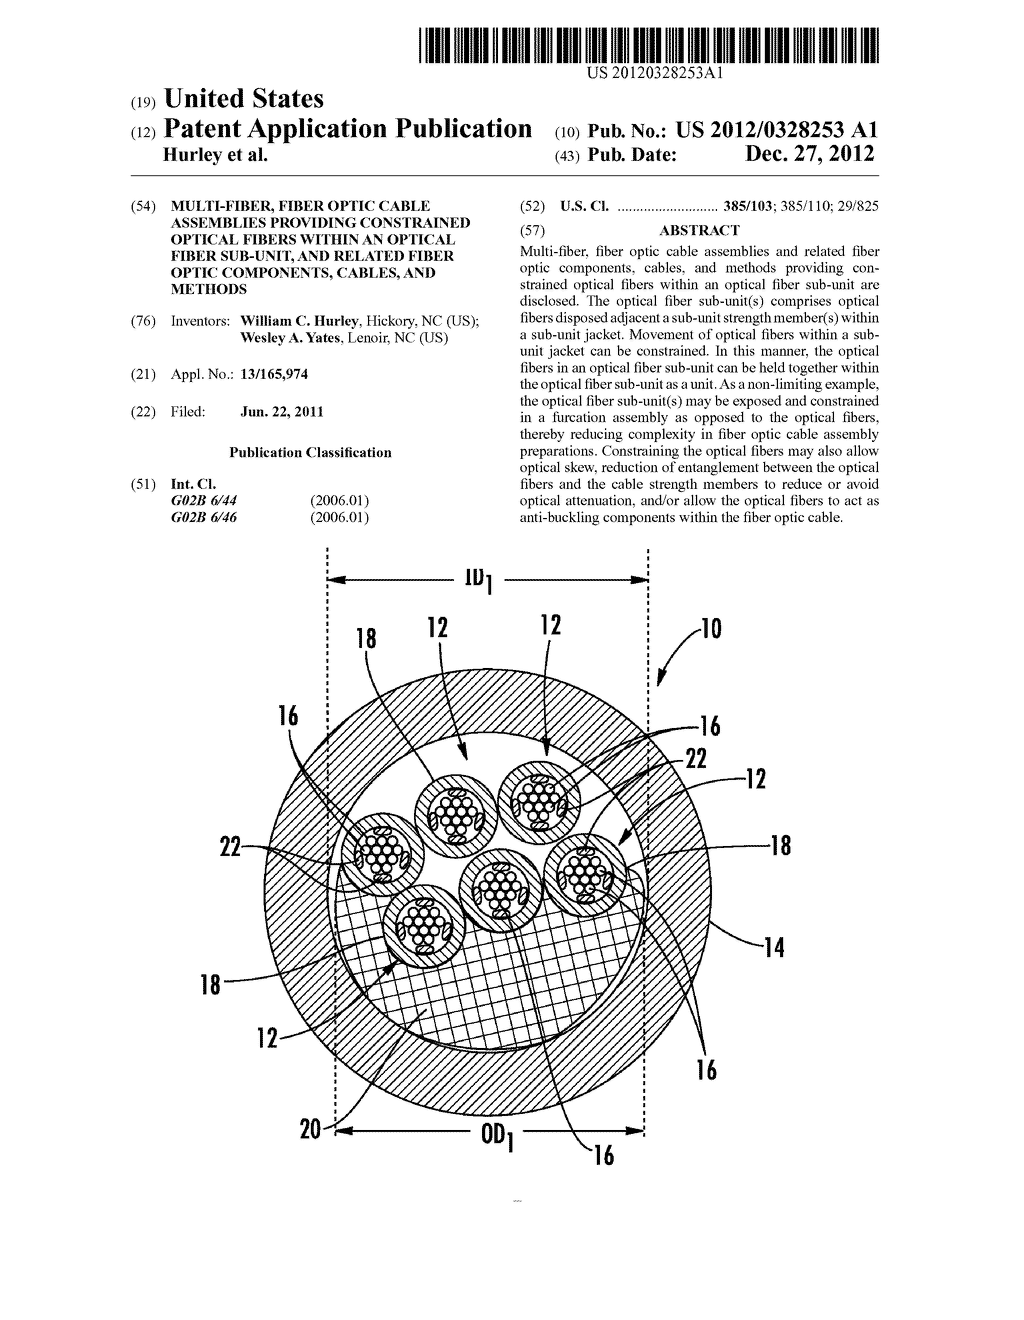 MULTI-FIBER, FIBER OPTIC CABLE ASSEMBLIES PROVIDING CONSTRAINED OPTICAL     FIBERS WITHIN AN OPTICAL FIBER SUB-UNIT, AND RELATED FIBER OPTIC     COMPONENTS, CABLES, AND METHODS - diagram, schematic, and image 01